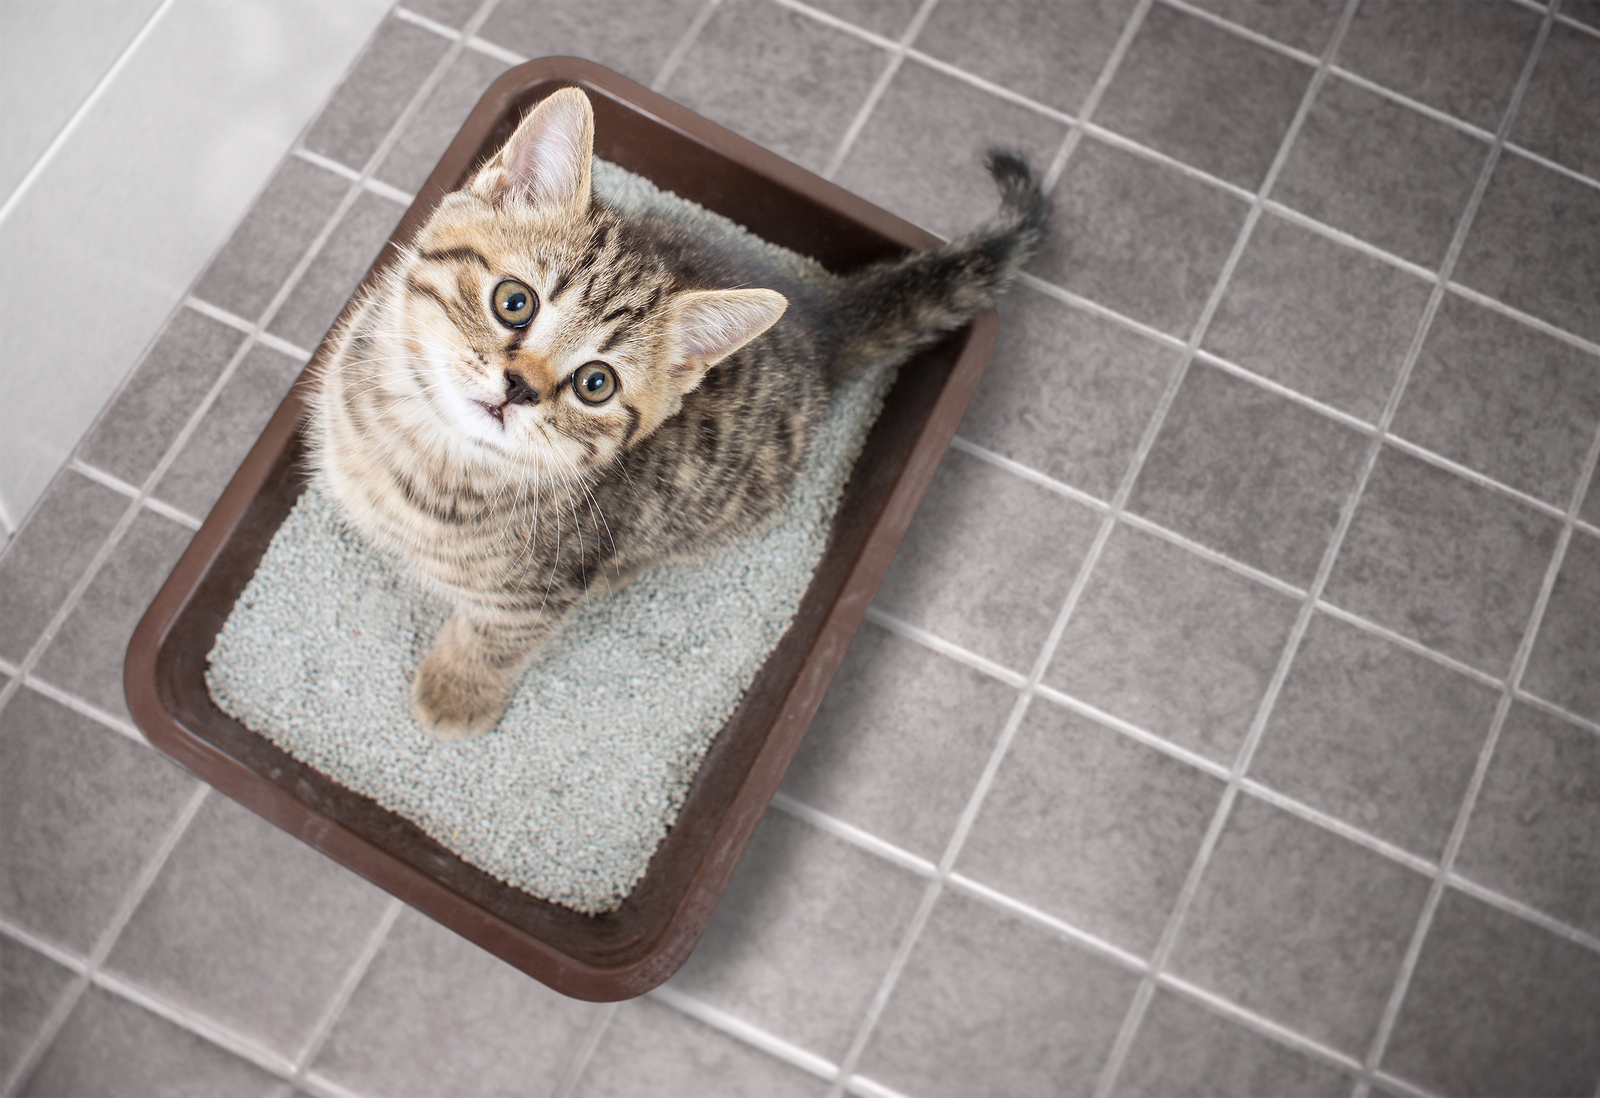 When To Clean Your Cat's Litter Box